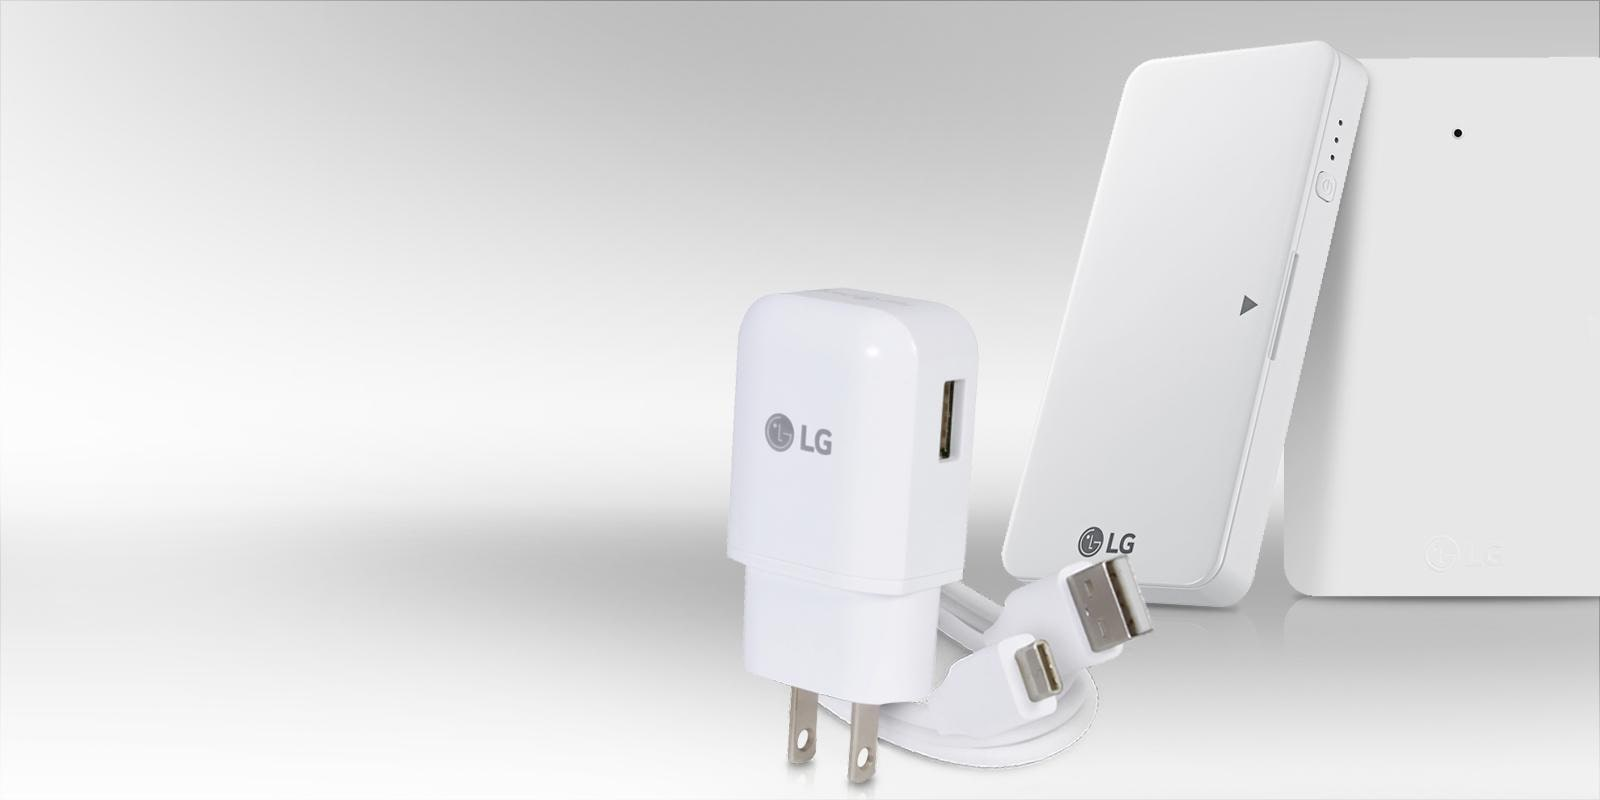 Lg cell phone chargers wireless chargers more lg usa chargers greentooth Images